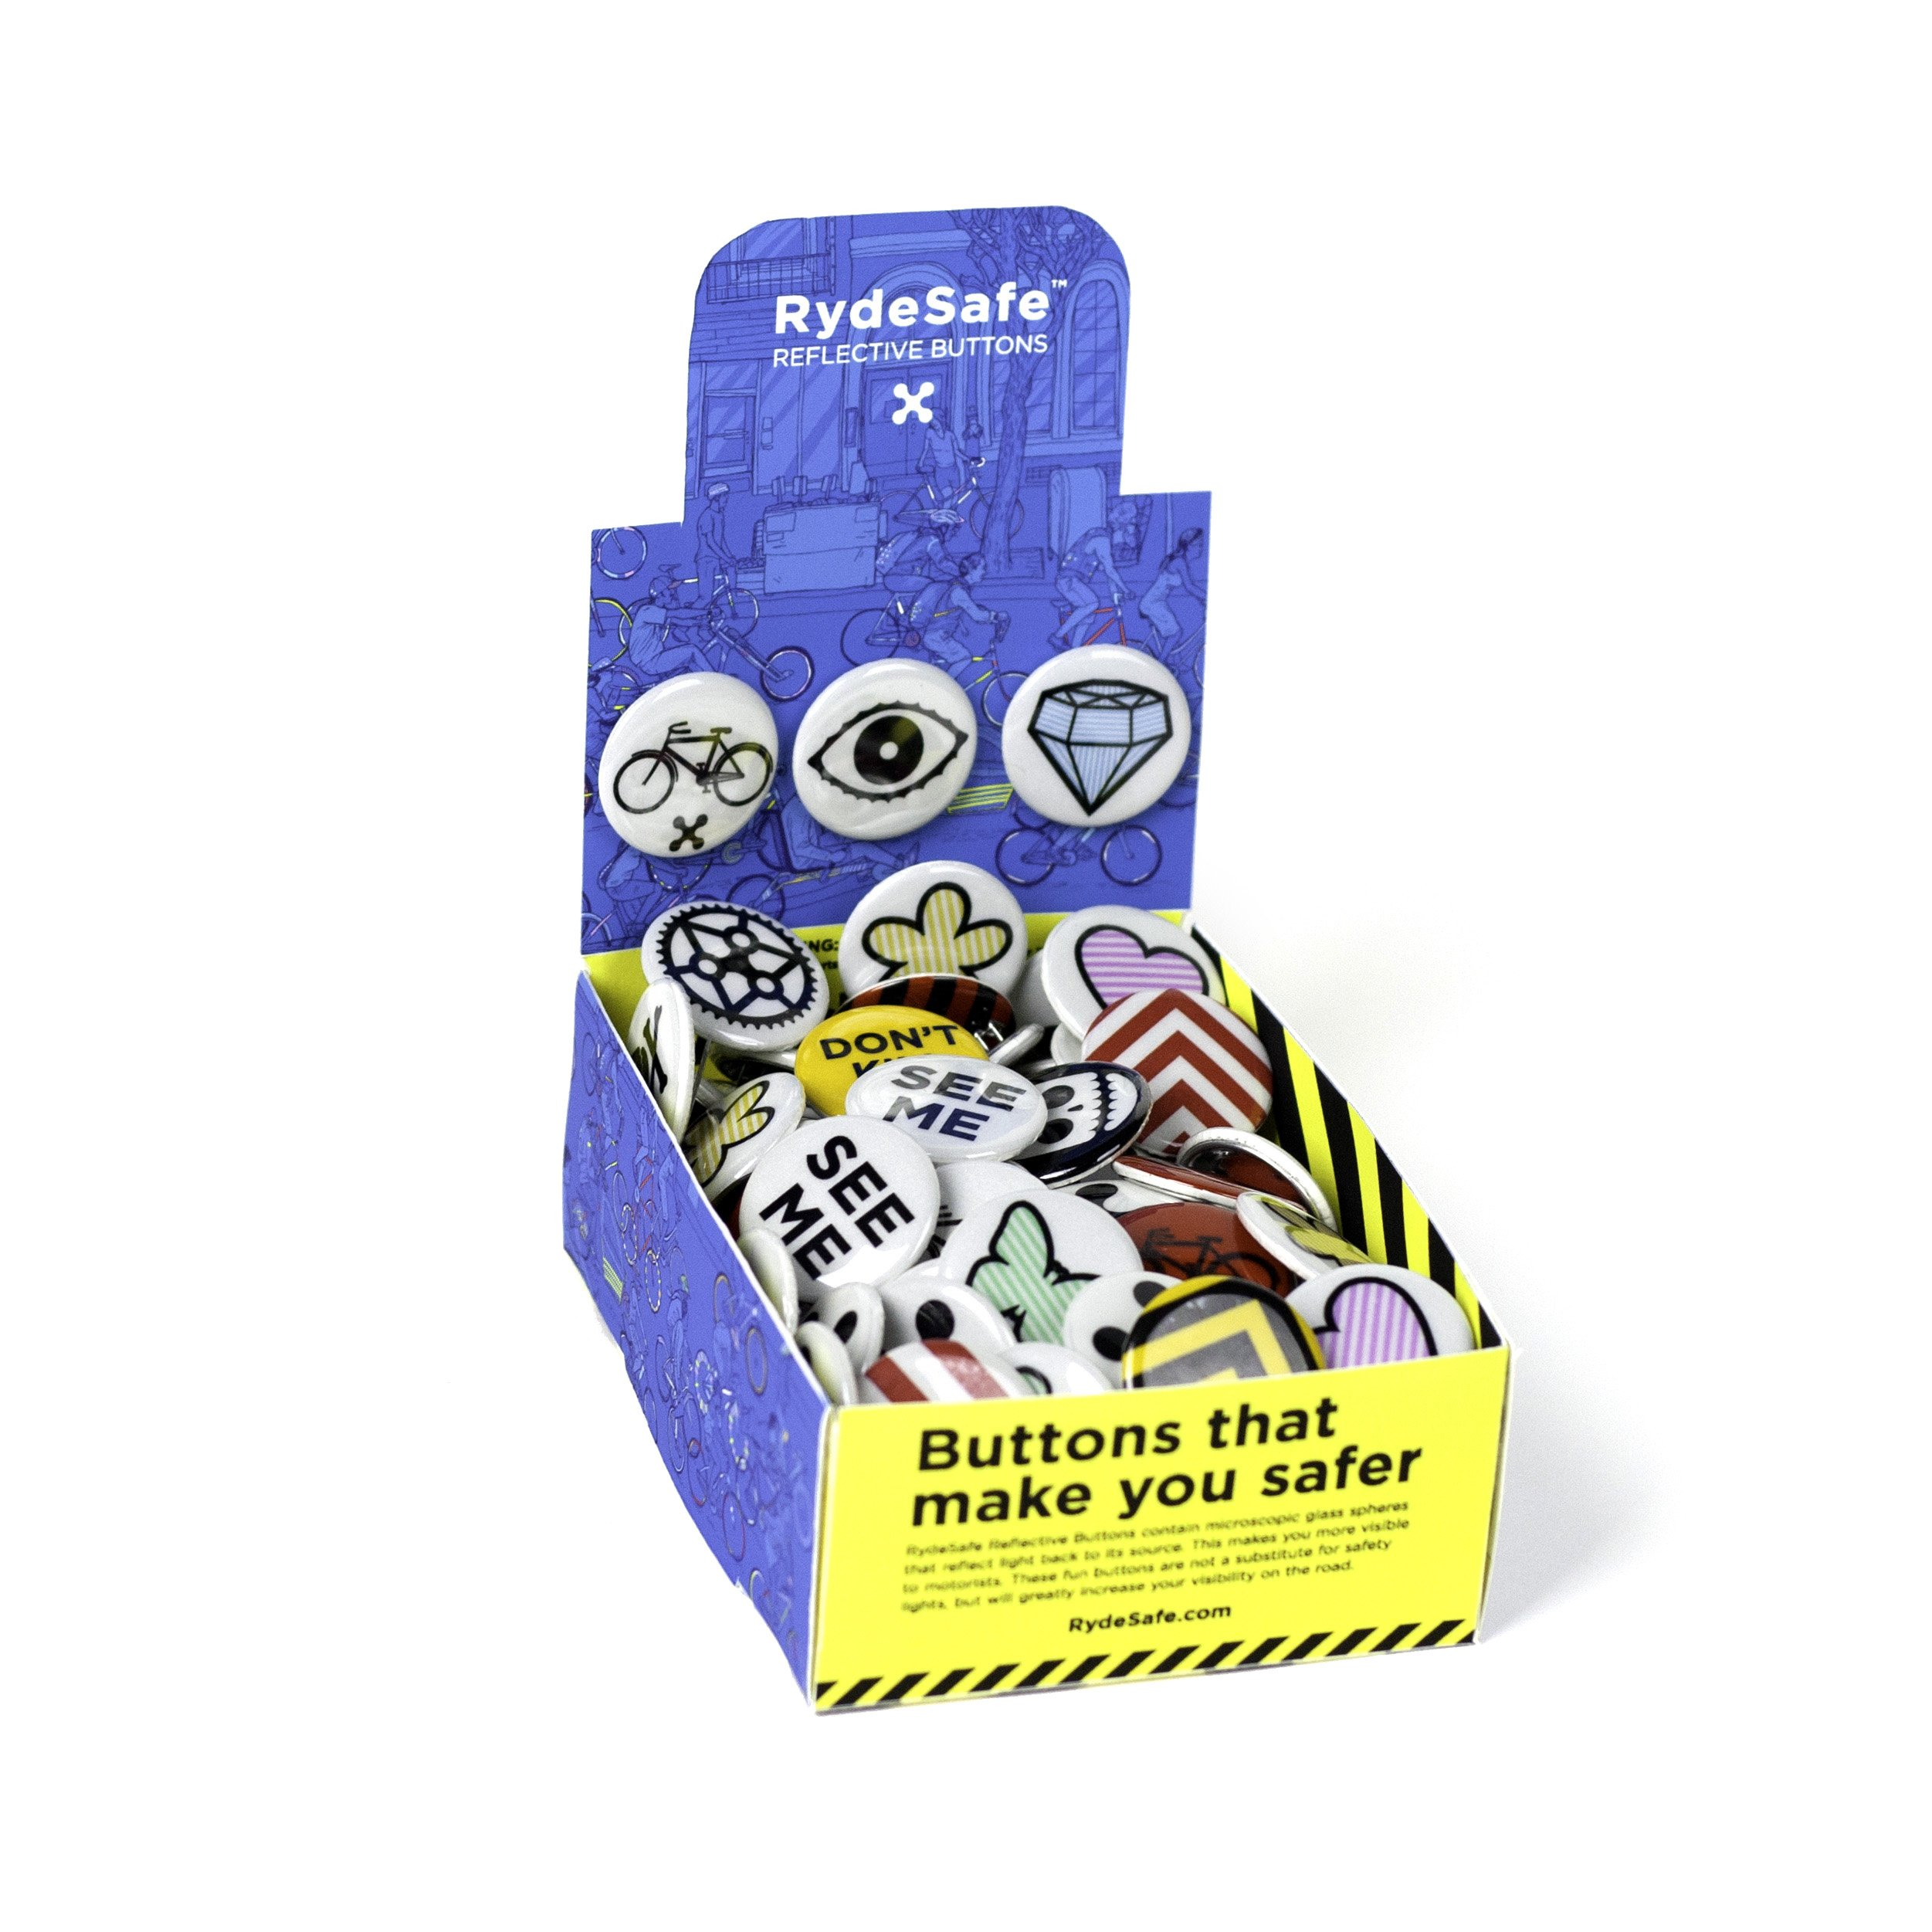 RydeSafe Reflective Button Box (120 Buttons), Assorted